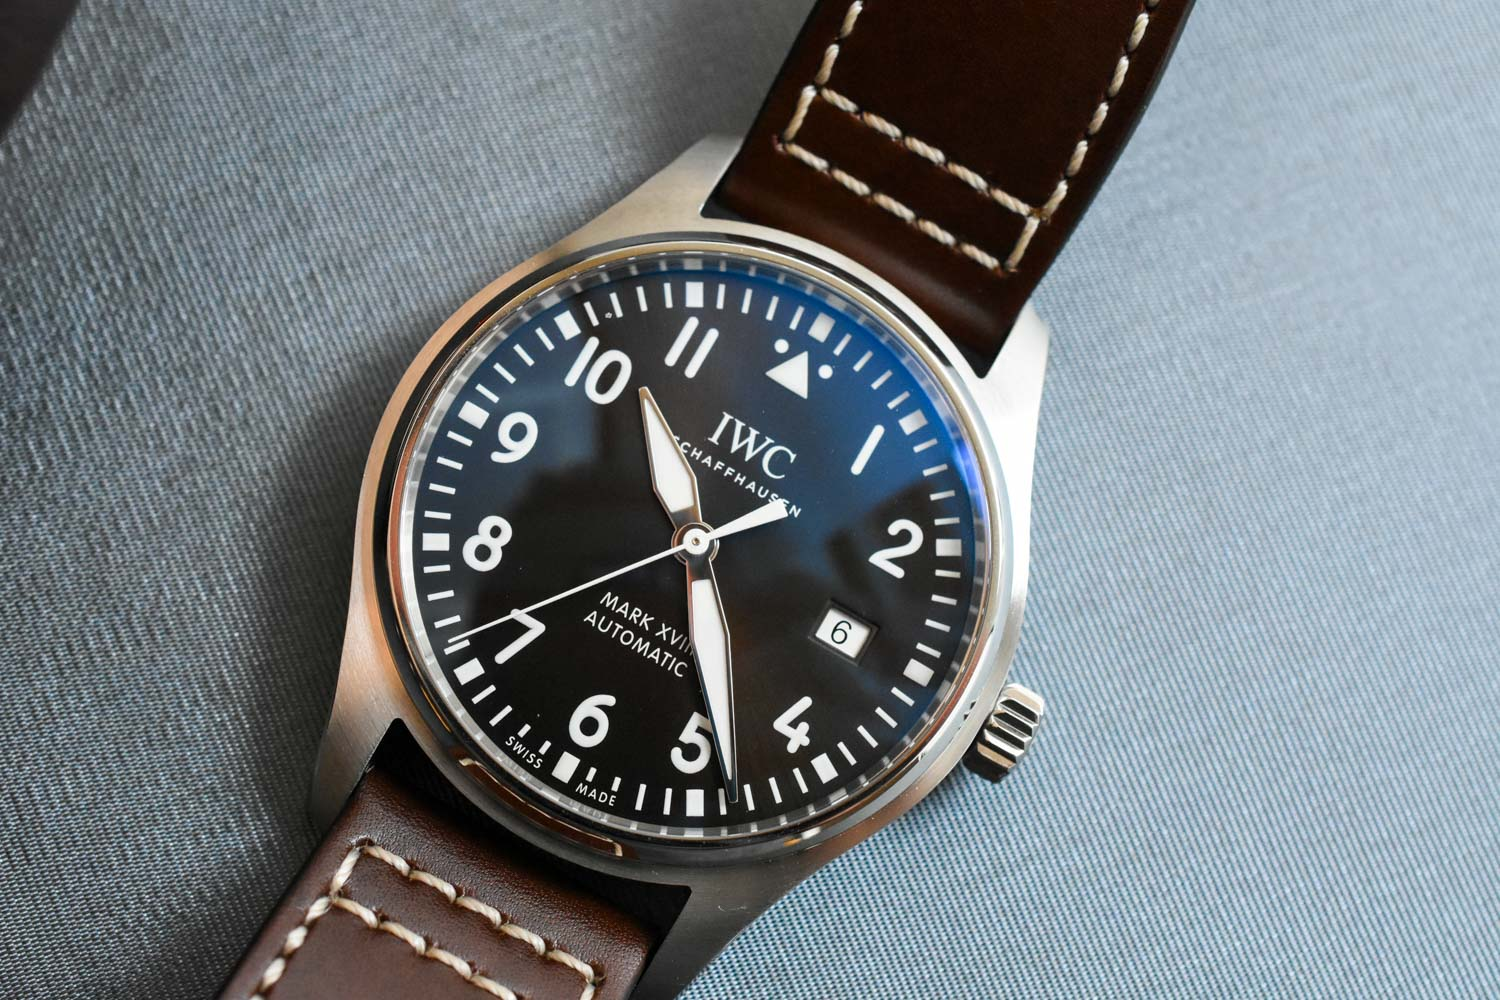 IWC Pilot Watch Mark XVIII Exupery